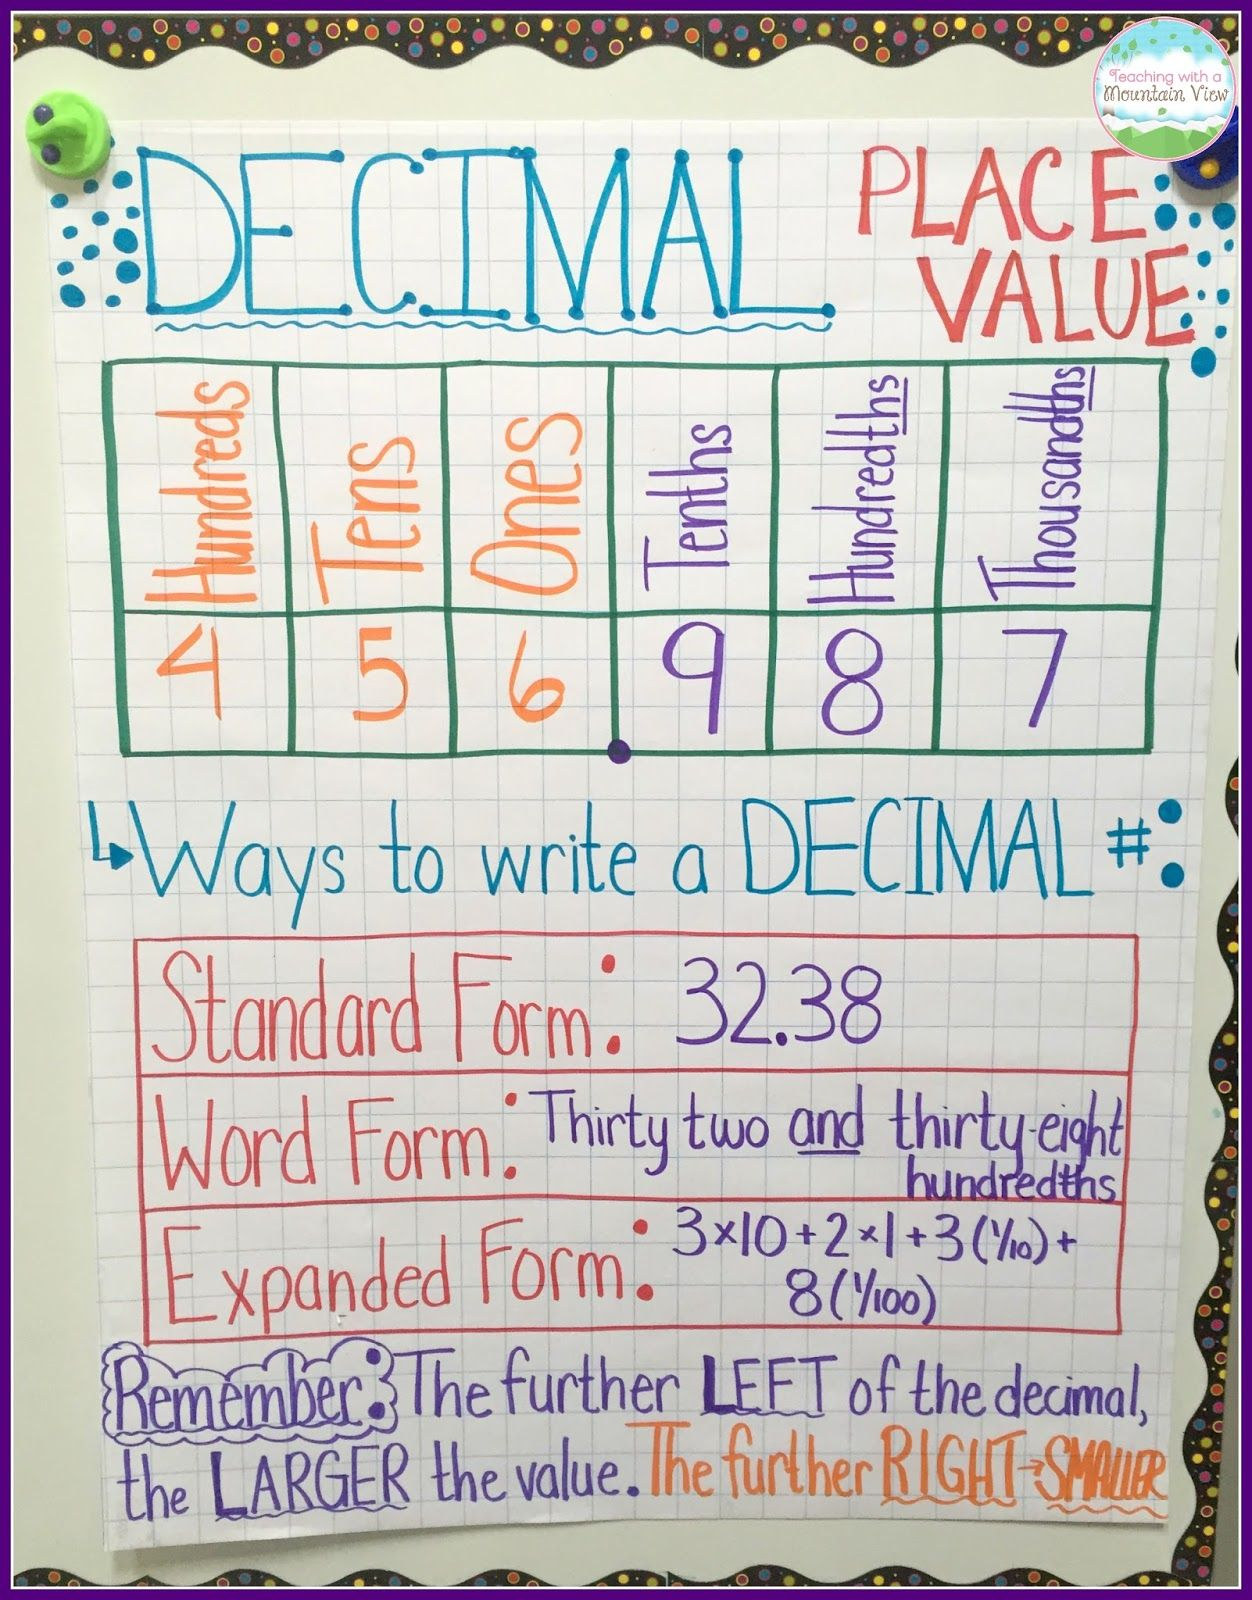 Decimal Place Value Resources & Teaching Ideas - Teaching with a